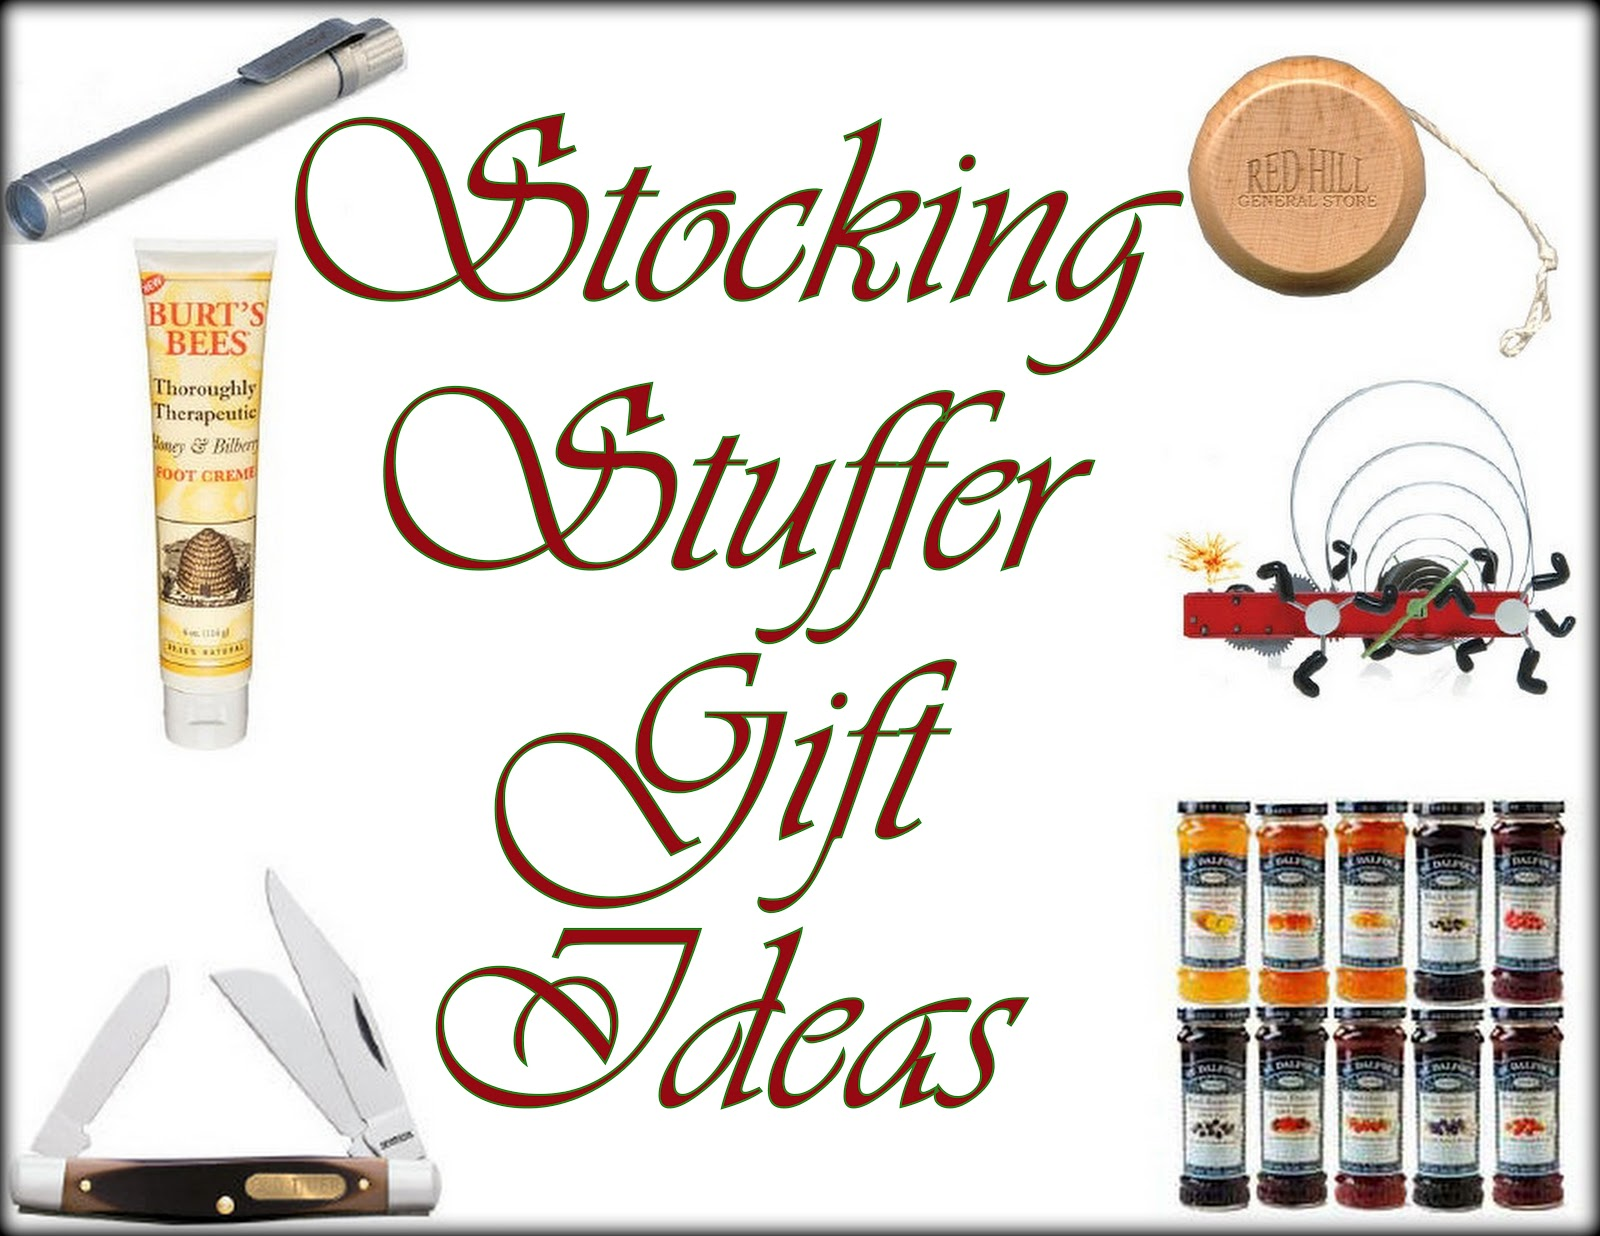 Red hill general store stocking stuffer ideas for Great stocking stuffers for adults